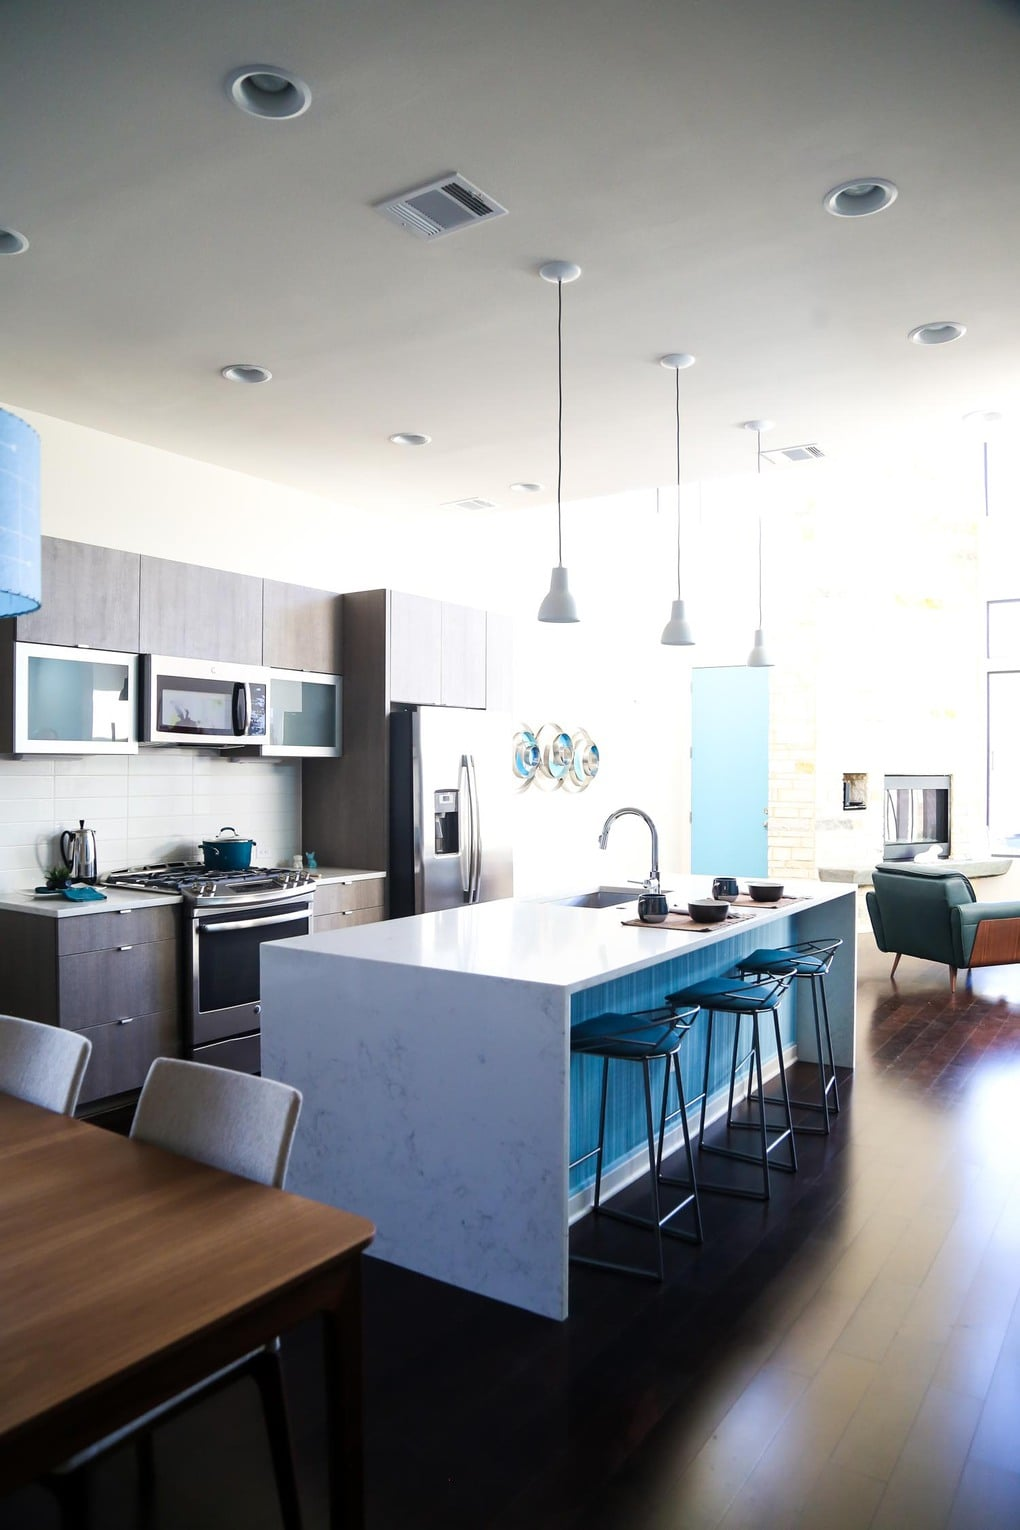 A midcentury modern kitchen with blue accents